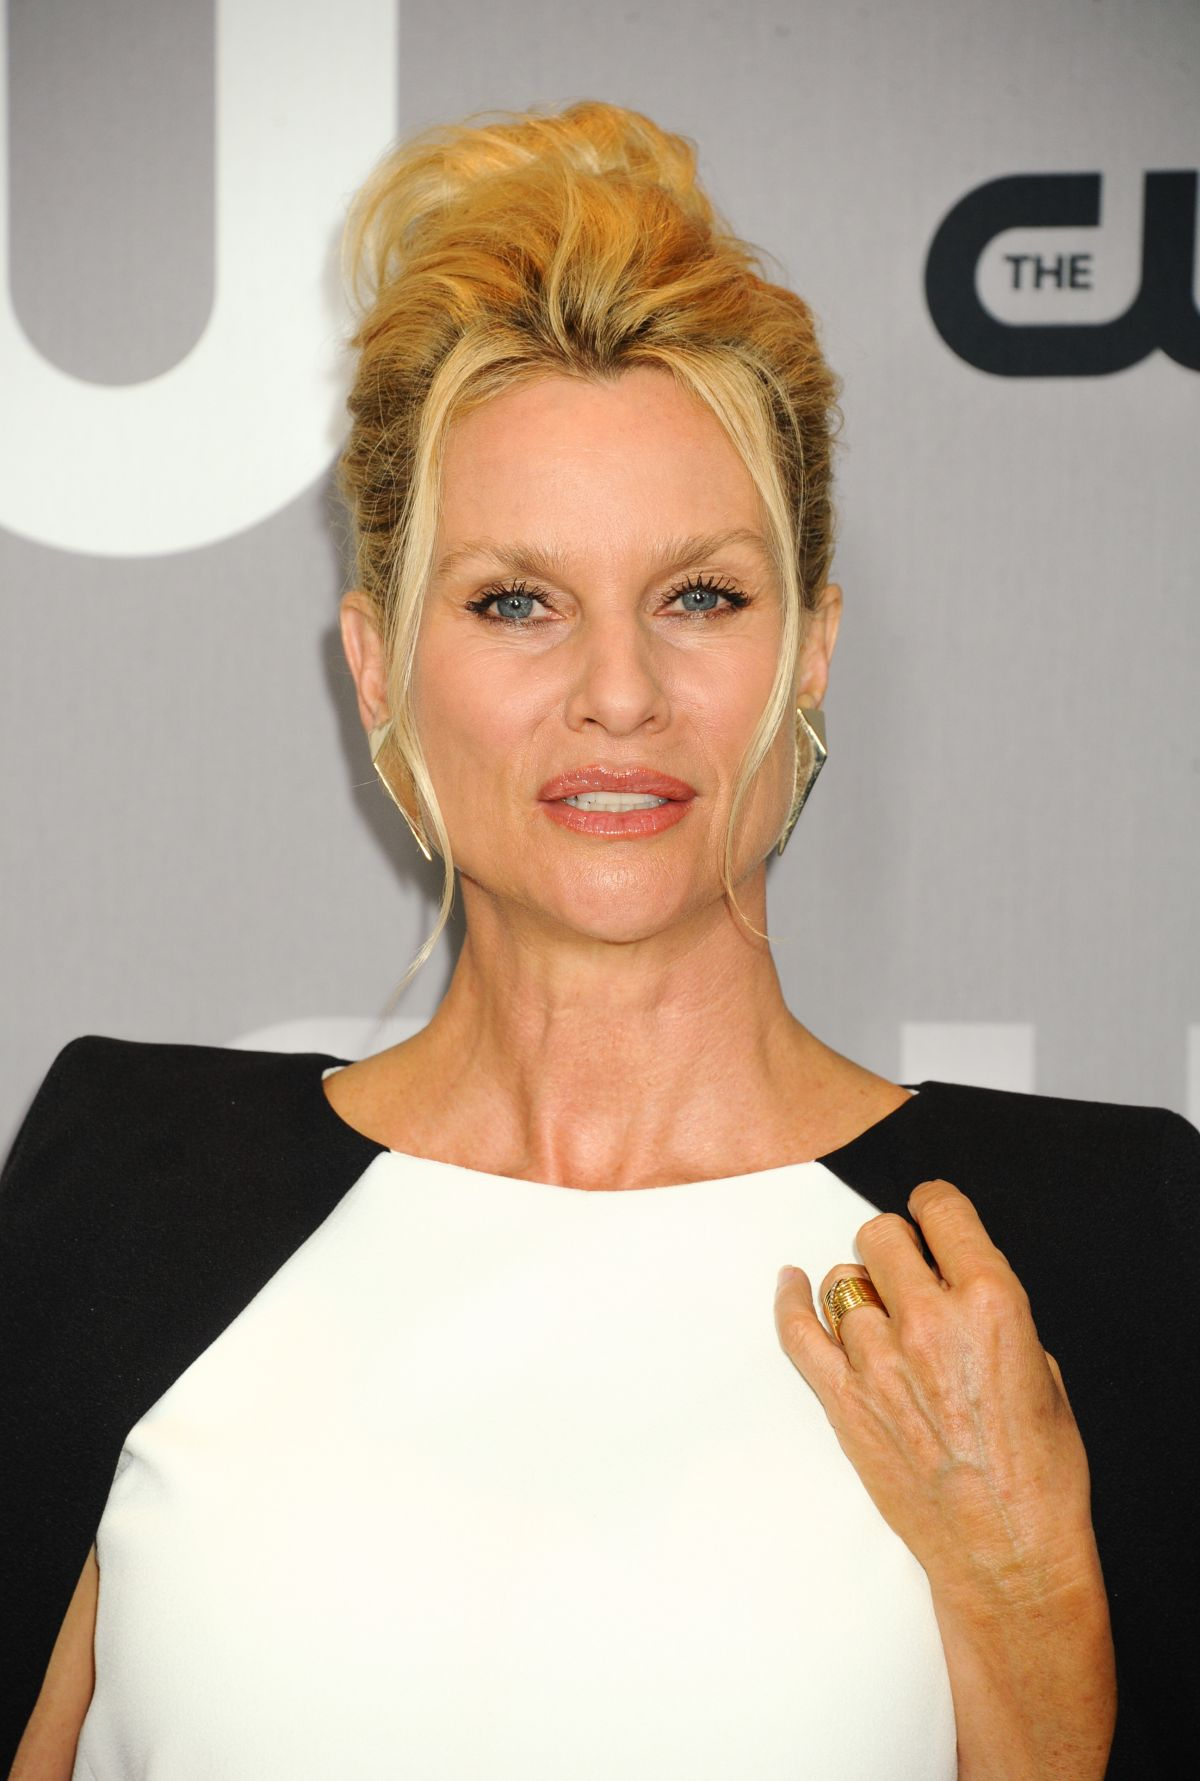 Nicollette Sheridan British Actress, Writer, Producer